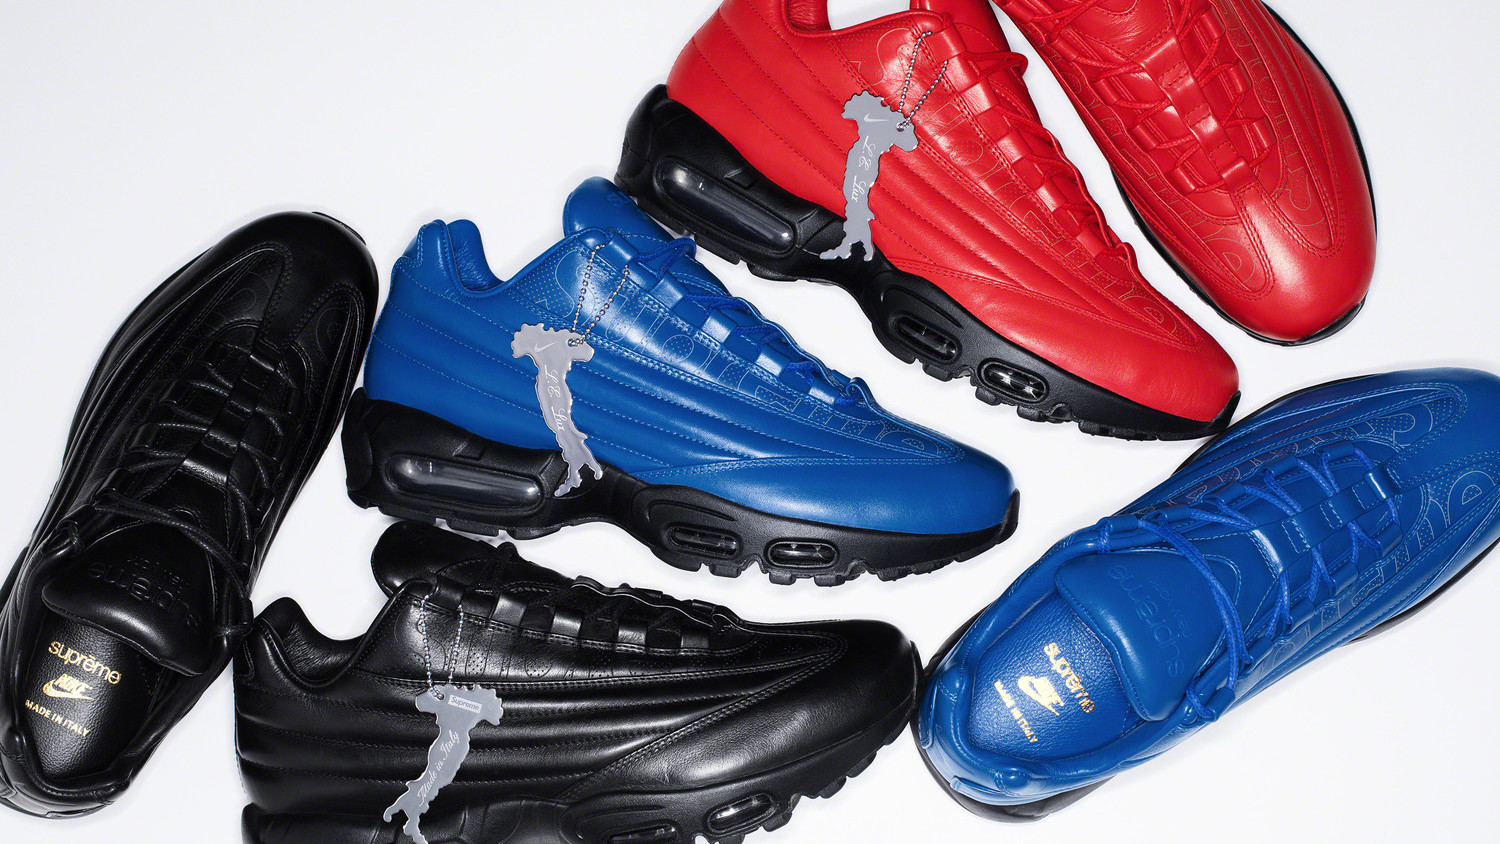 Supreme X Nike Air Max 95 Lux 'Red' 'Blue' 'Black' Release Date